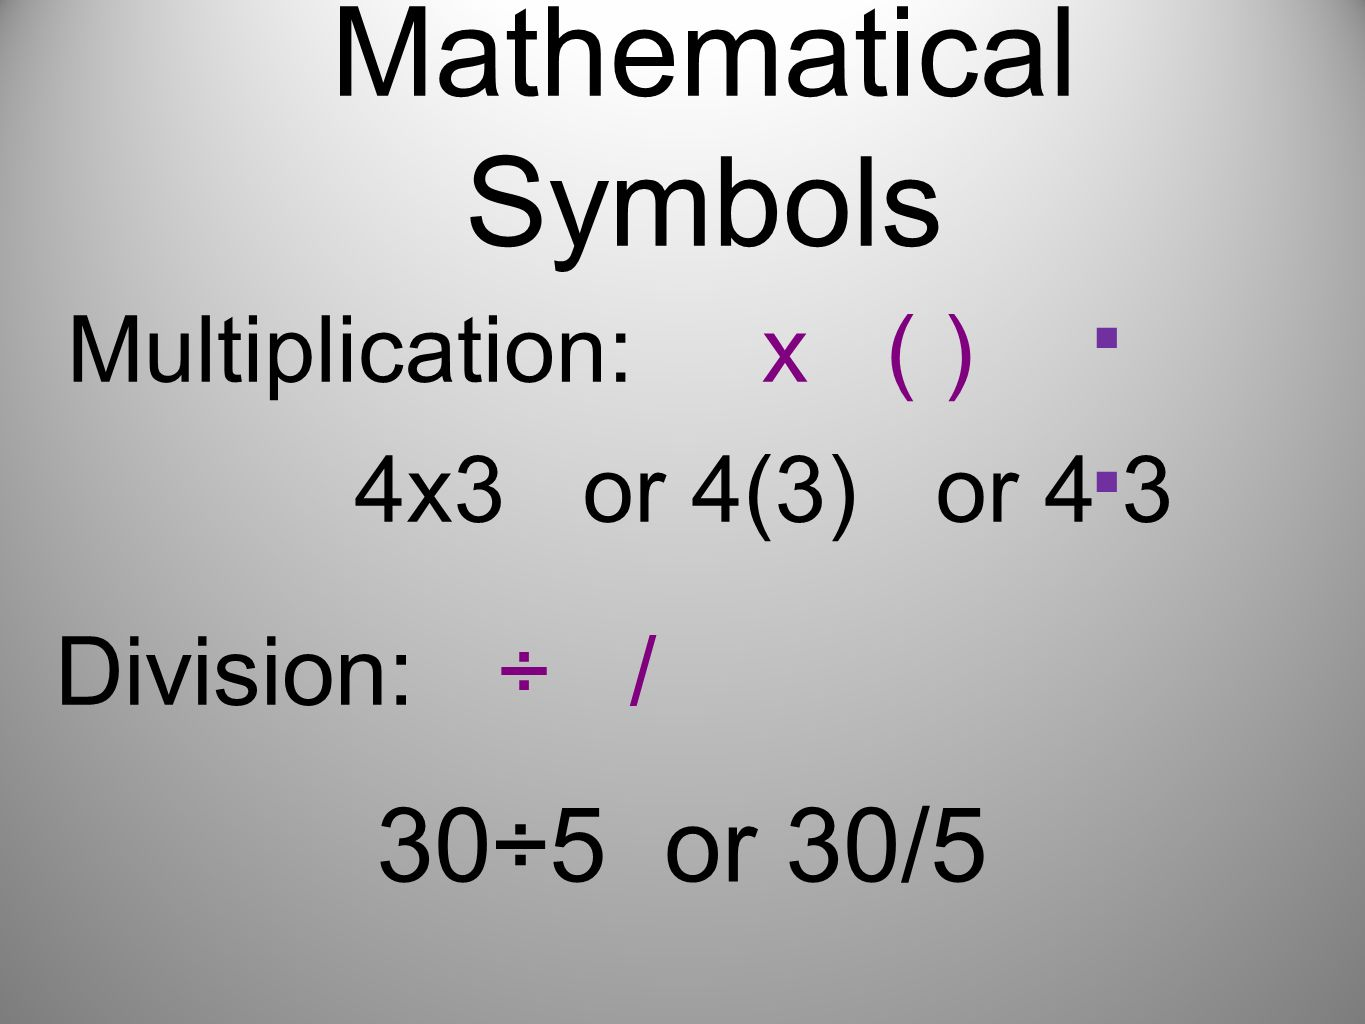 . . Mathematical Symbols 30÷5 or 30/5 Division: ÷ /